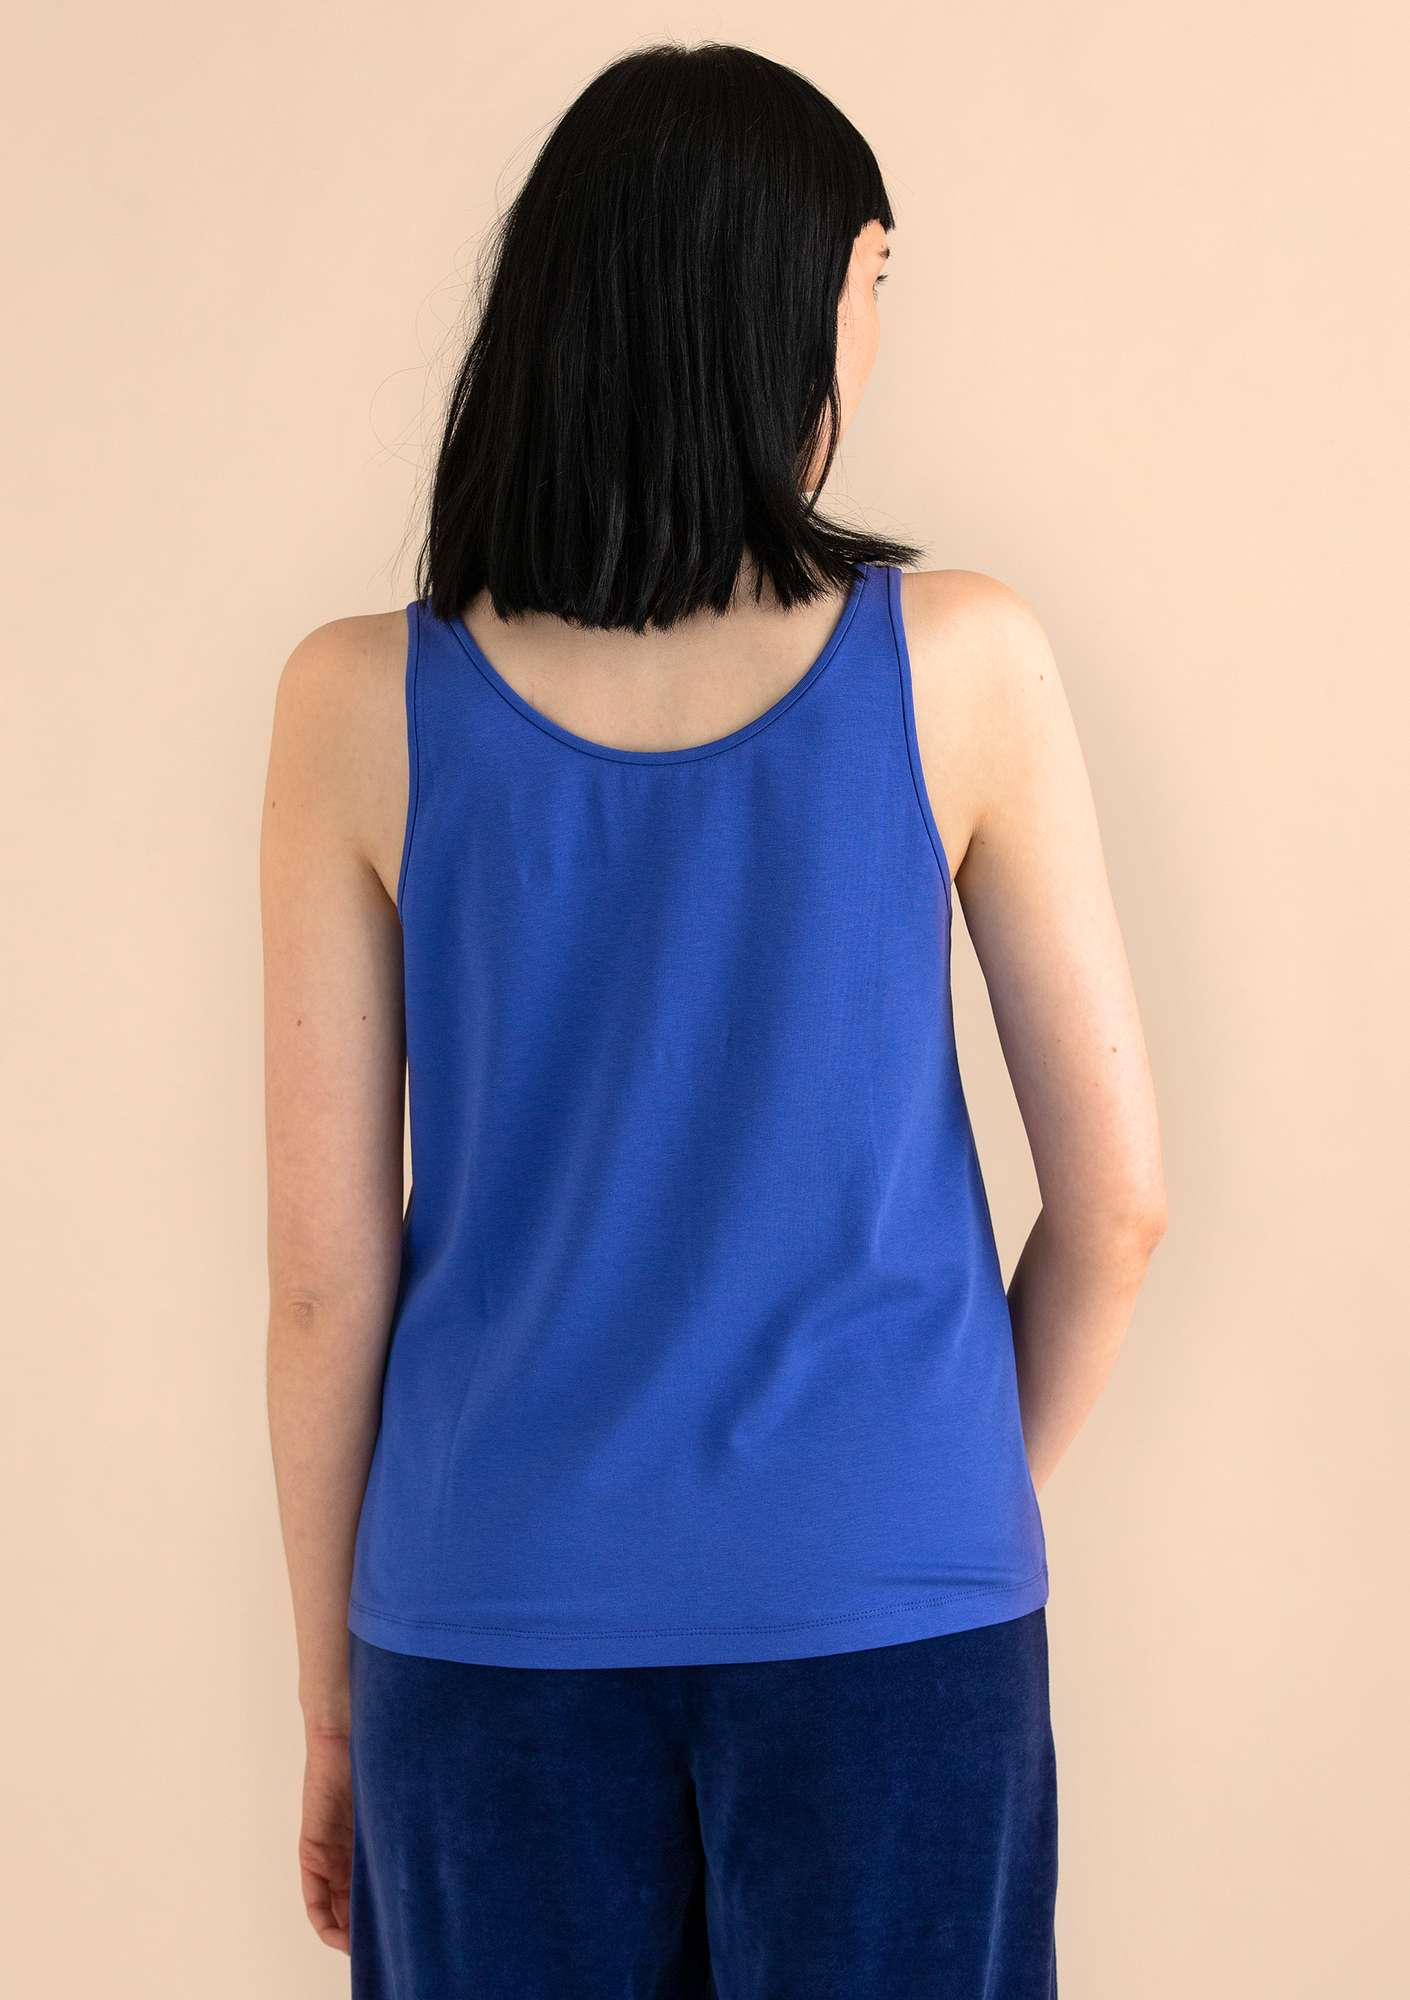 VIGG tank top in modal/eco-cotton/spandex lupine